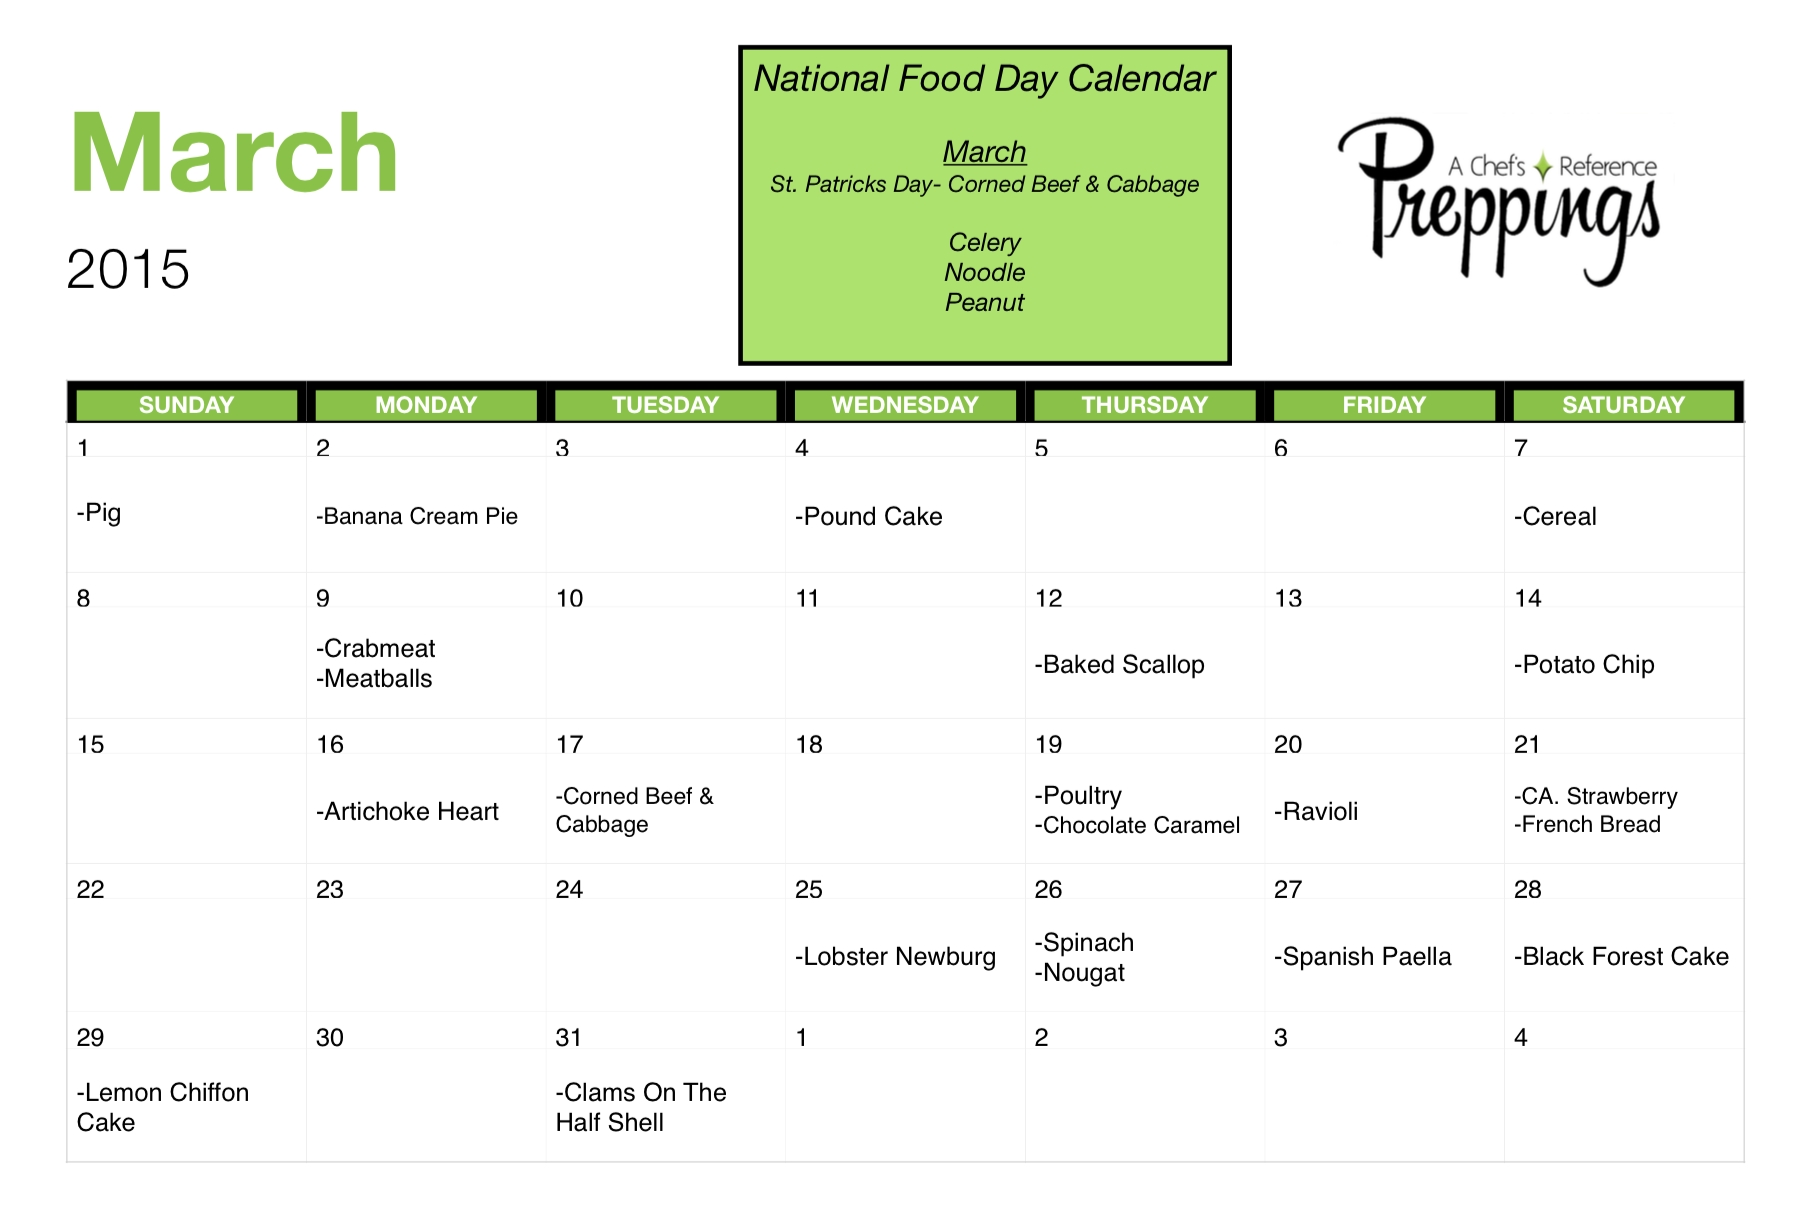 National Food Days- March 2015 - Preppings  National Food Of The Day Calendar